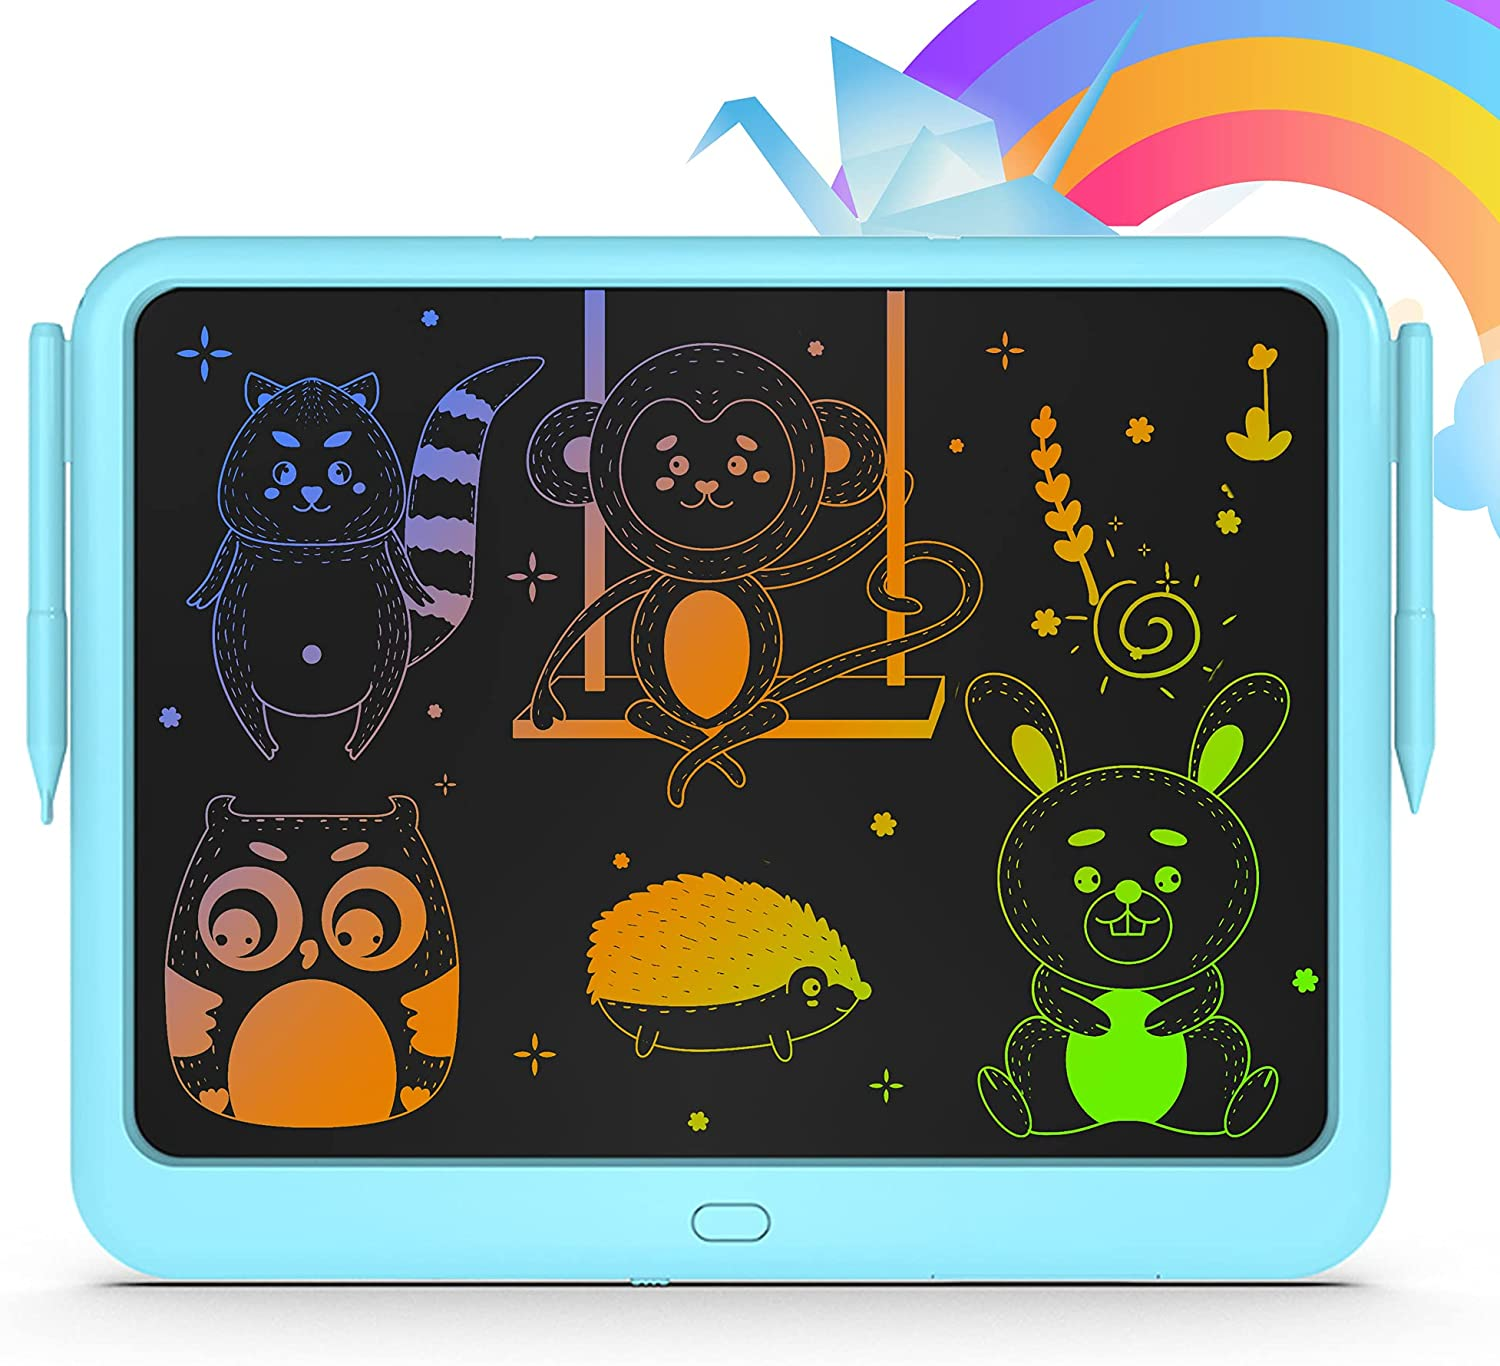 PZJDSR 15-Inch LCD Writing Tablet,Drawing Tablets for Kids Color Graffiti Writing Board for Kids Age 3-5,Children's Early Education Digital Drawing Board Educational Toy (Blue)